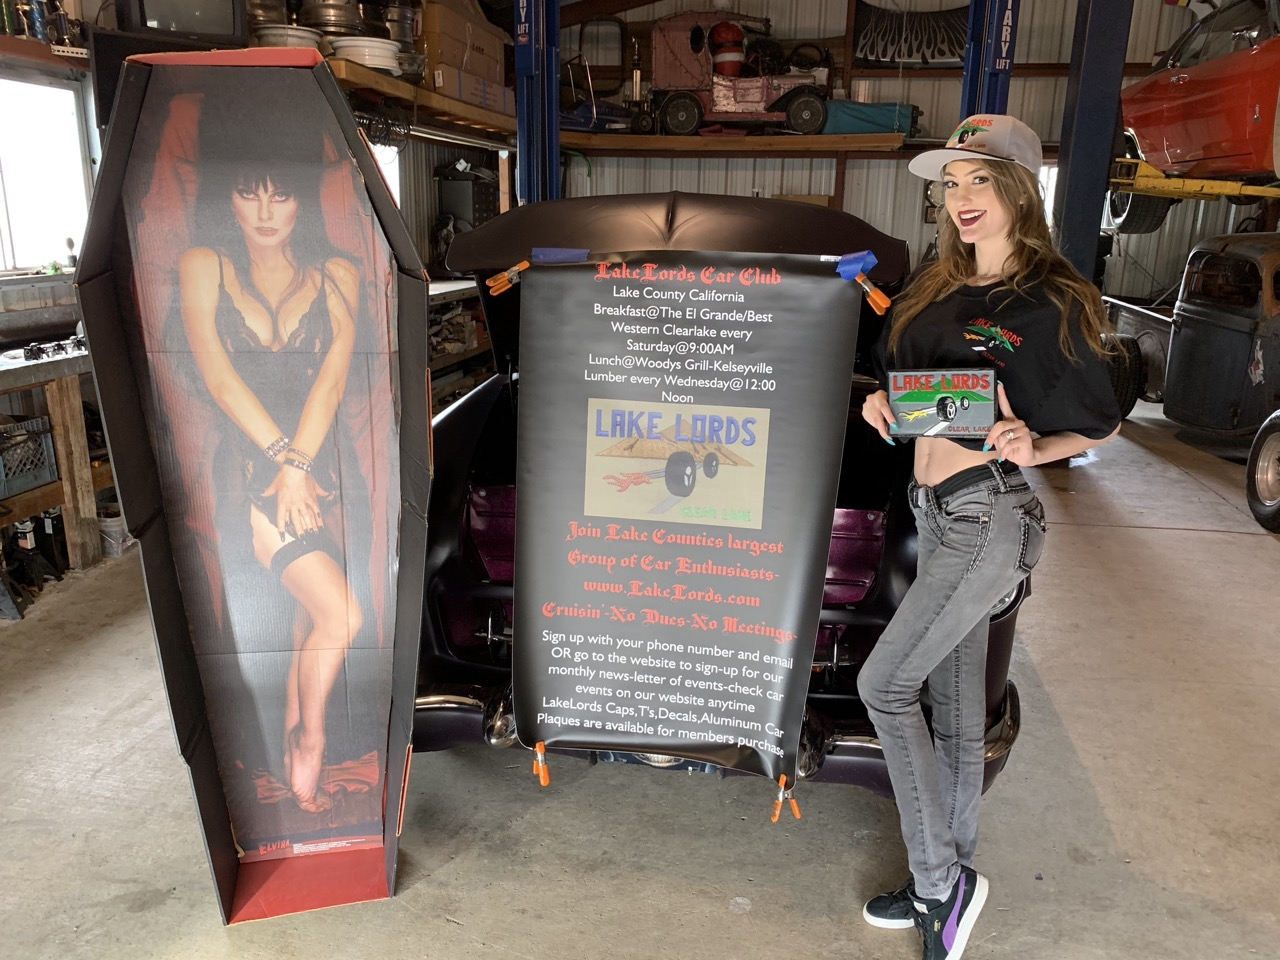 Lake Lords merchandise and banner along with Autumn and Elvira